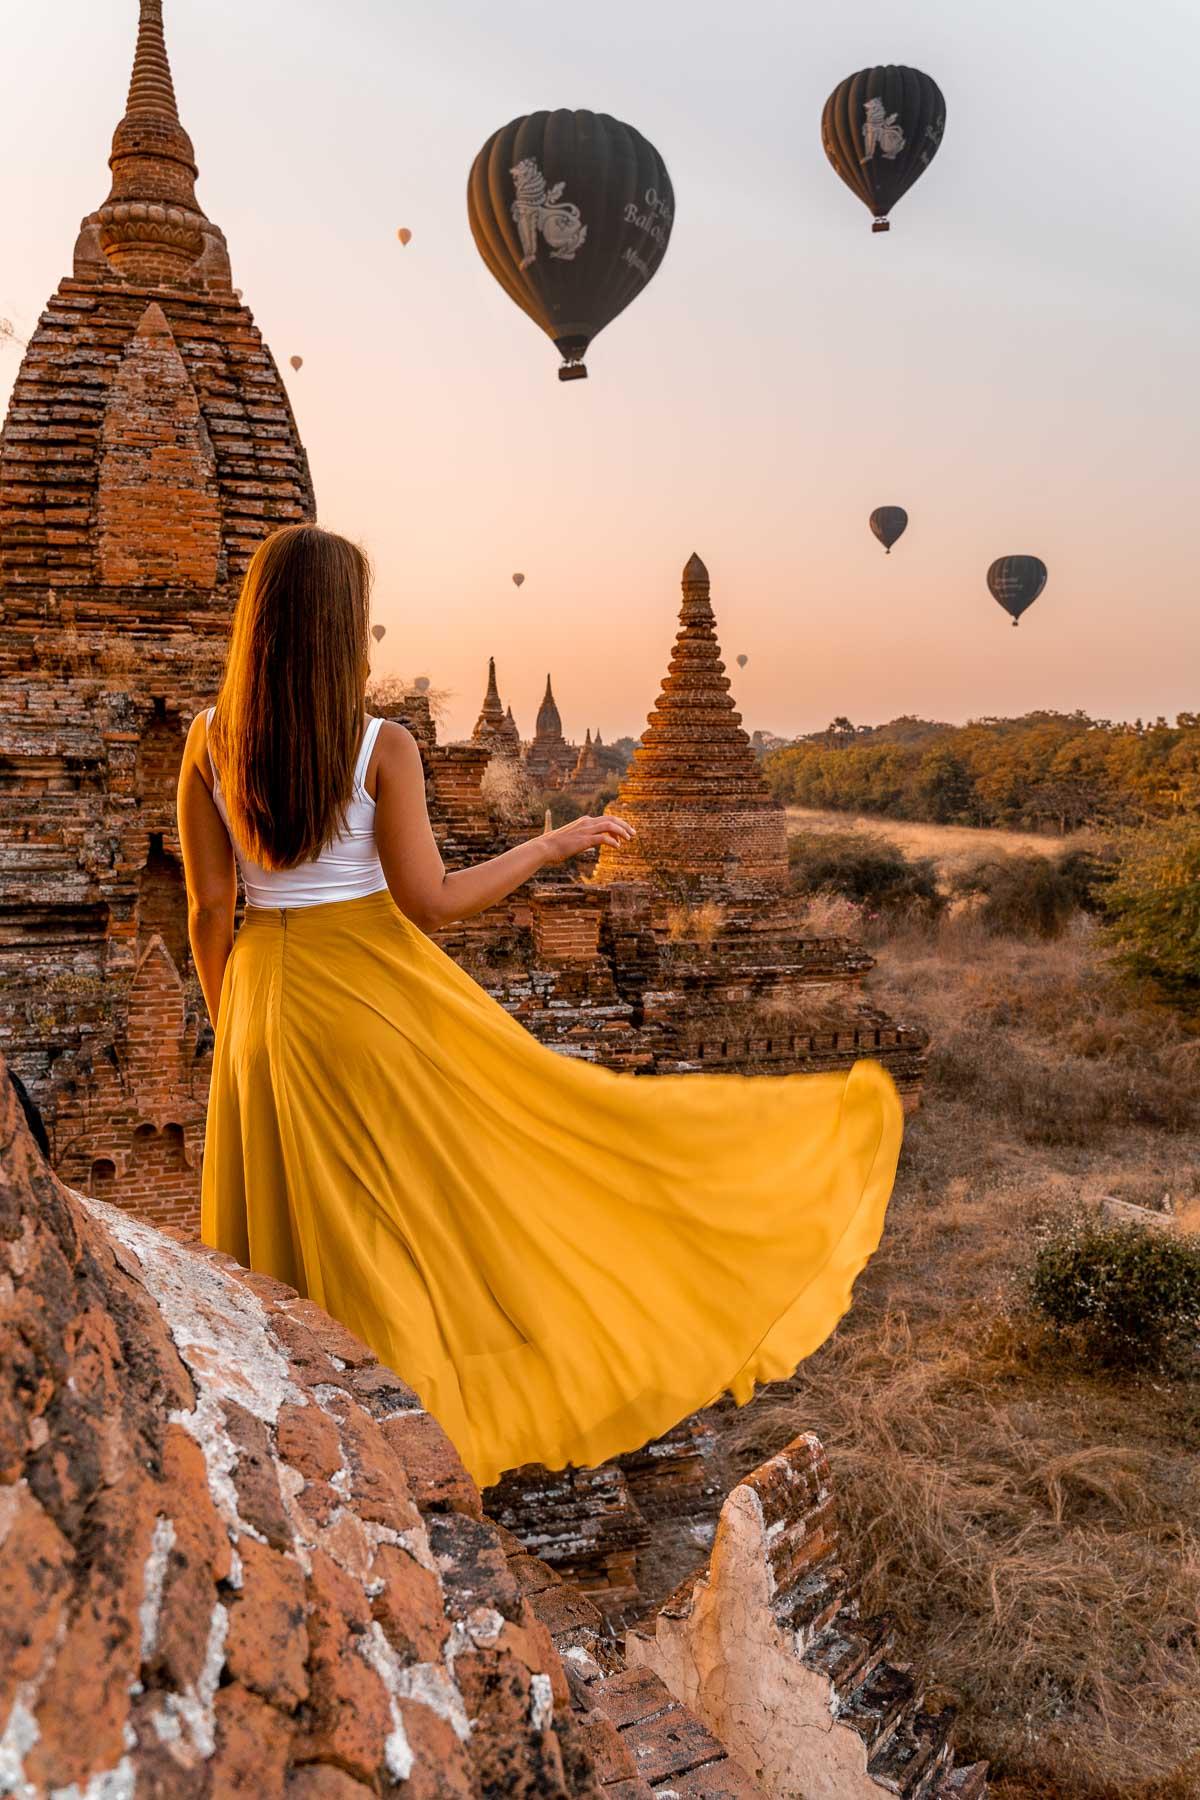 Girl in a yellow dress watching the hot air balloons at sunrise in Bagan, Myanmar